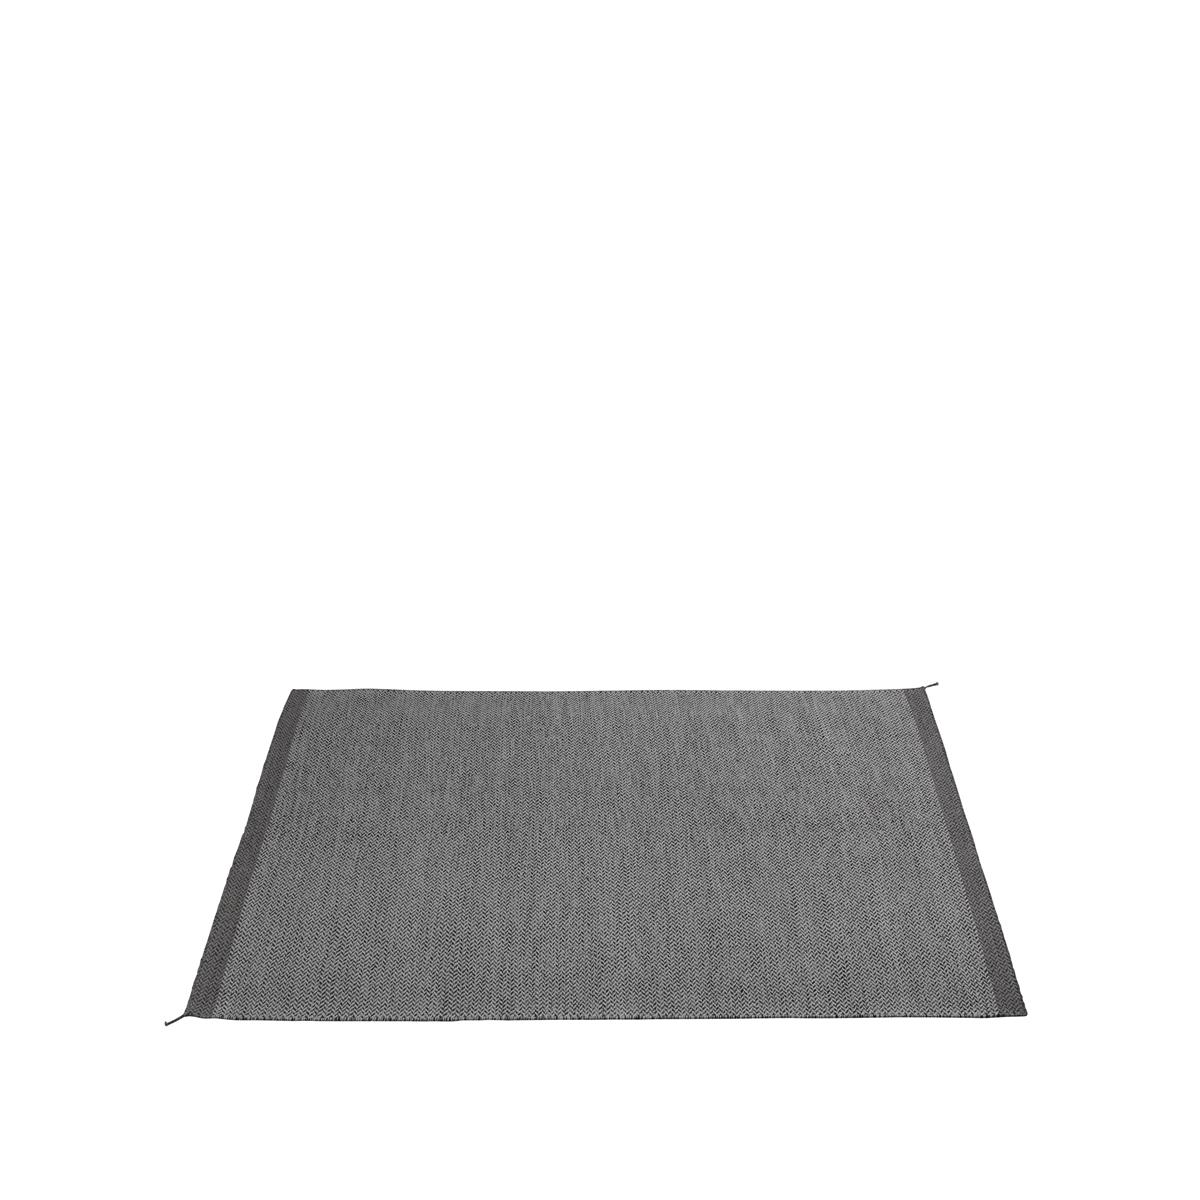 Ply Rug i 85 X 140 cm, Dark Grey